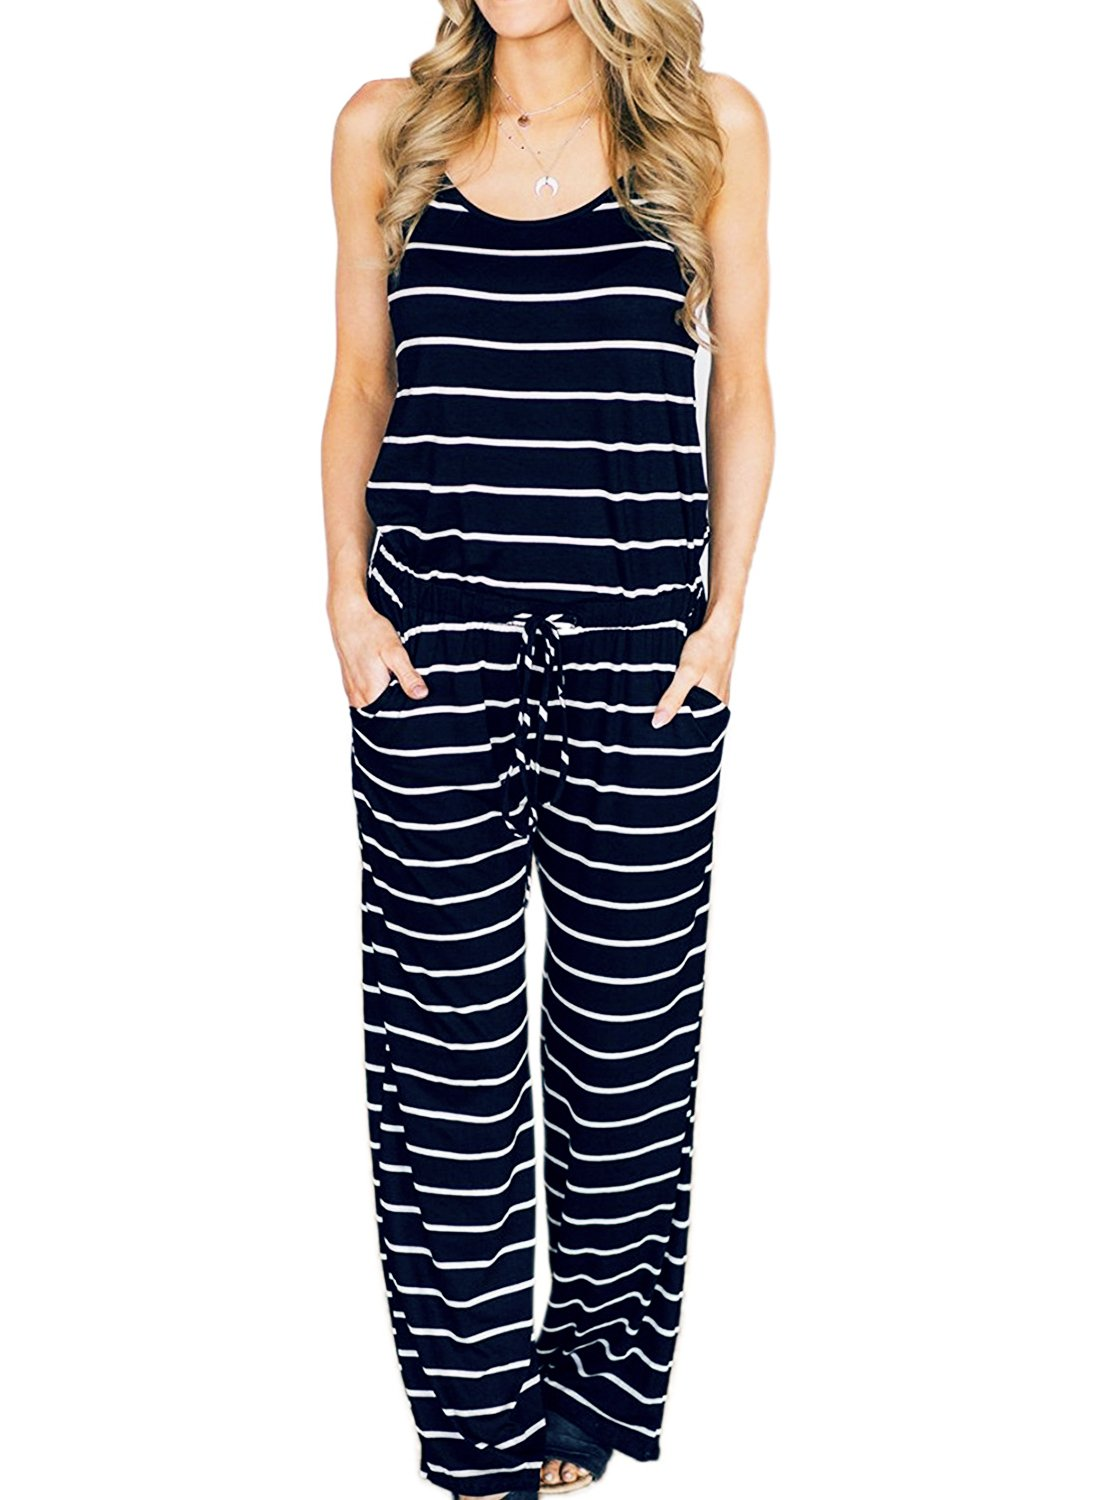 AMiERY Womens Blue Jumpsuits Summer Comfy Striped One Piece Jumpsuits Casual Wide Leg Long Pants Loose Sleeveless Jumpsuits Rompers (L, Navy Blue Stripes)